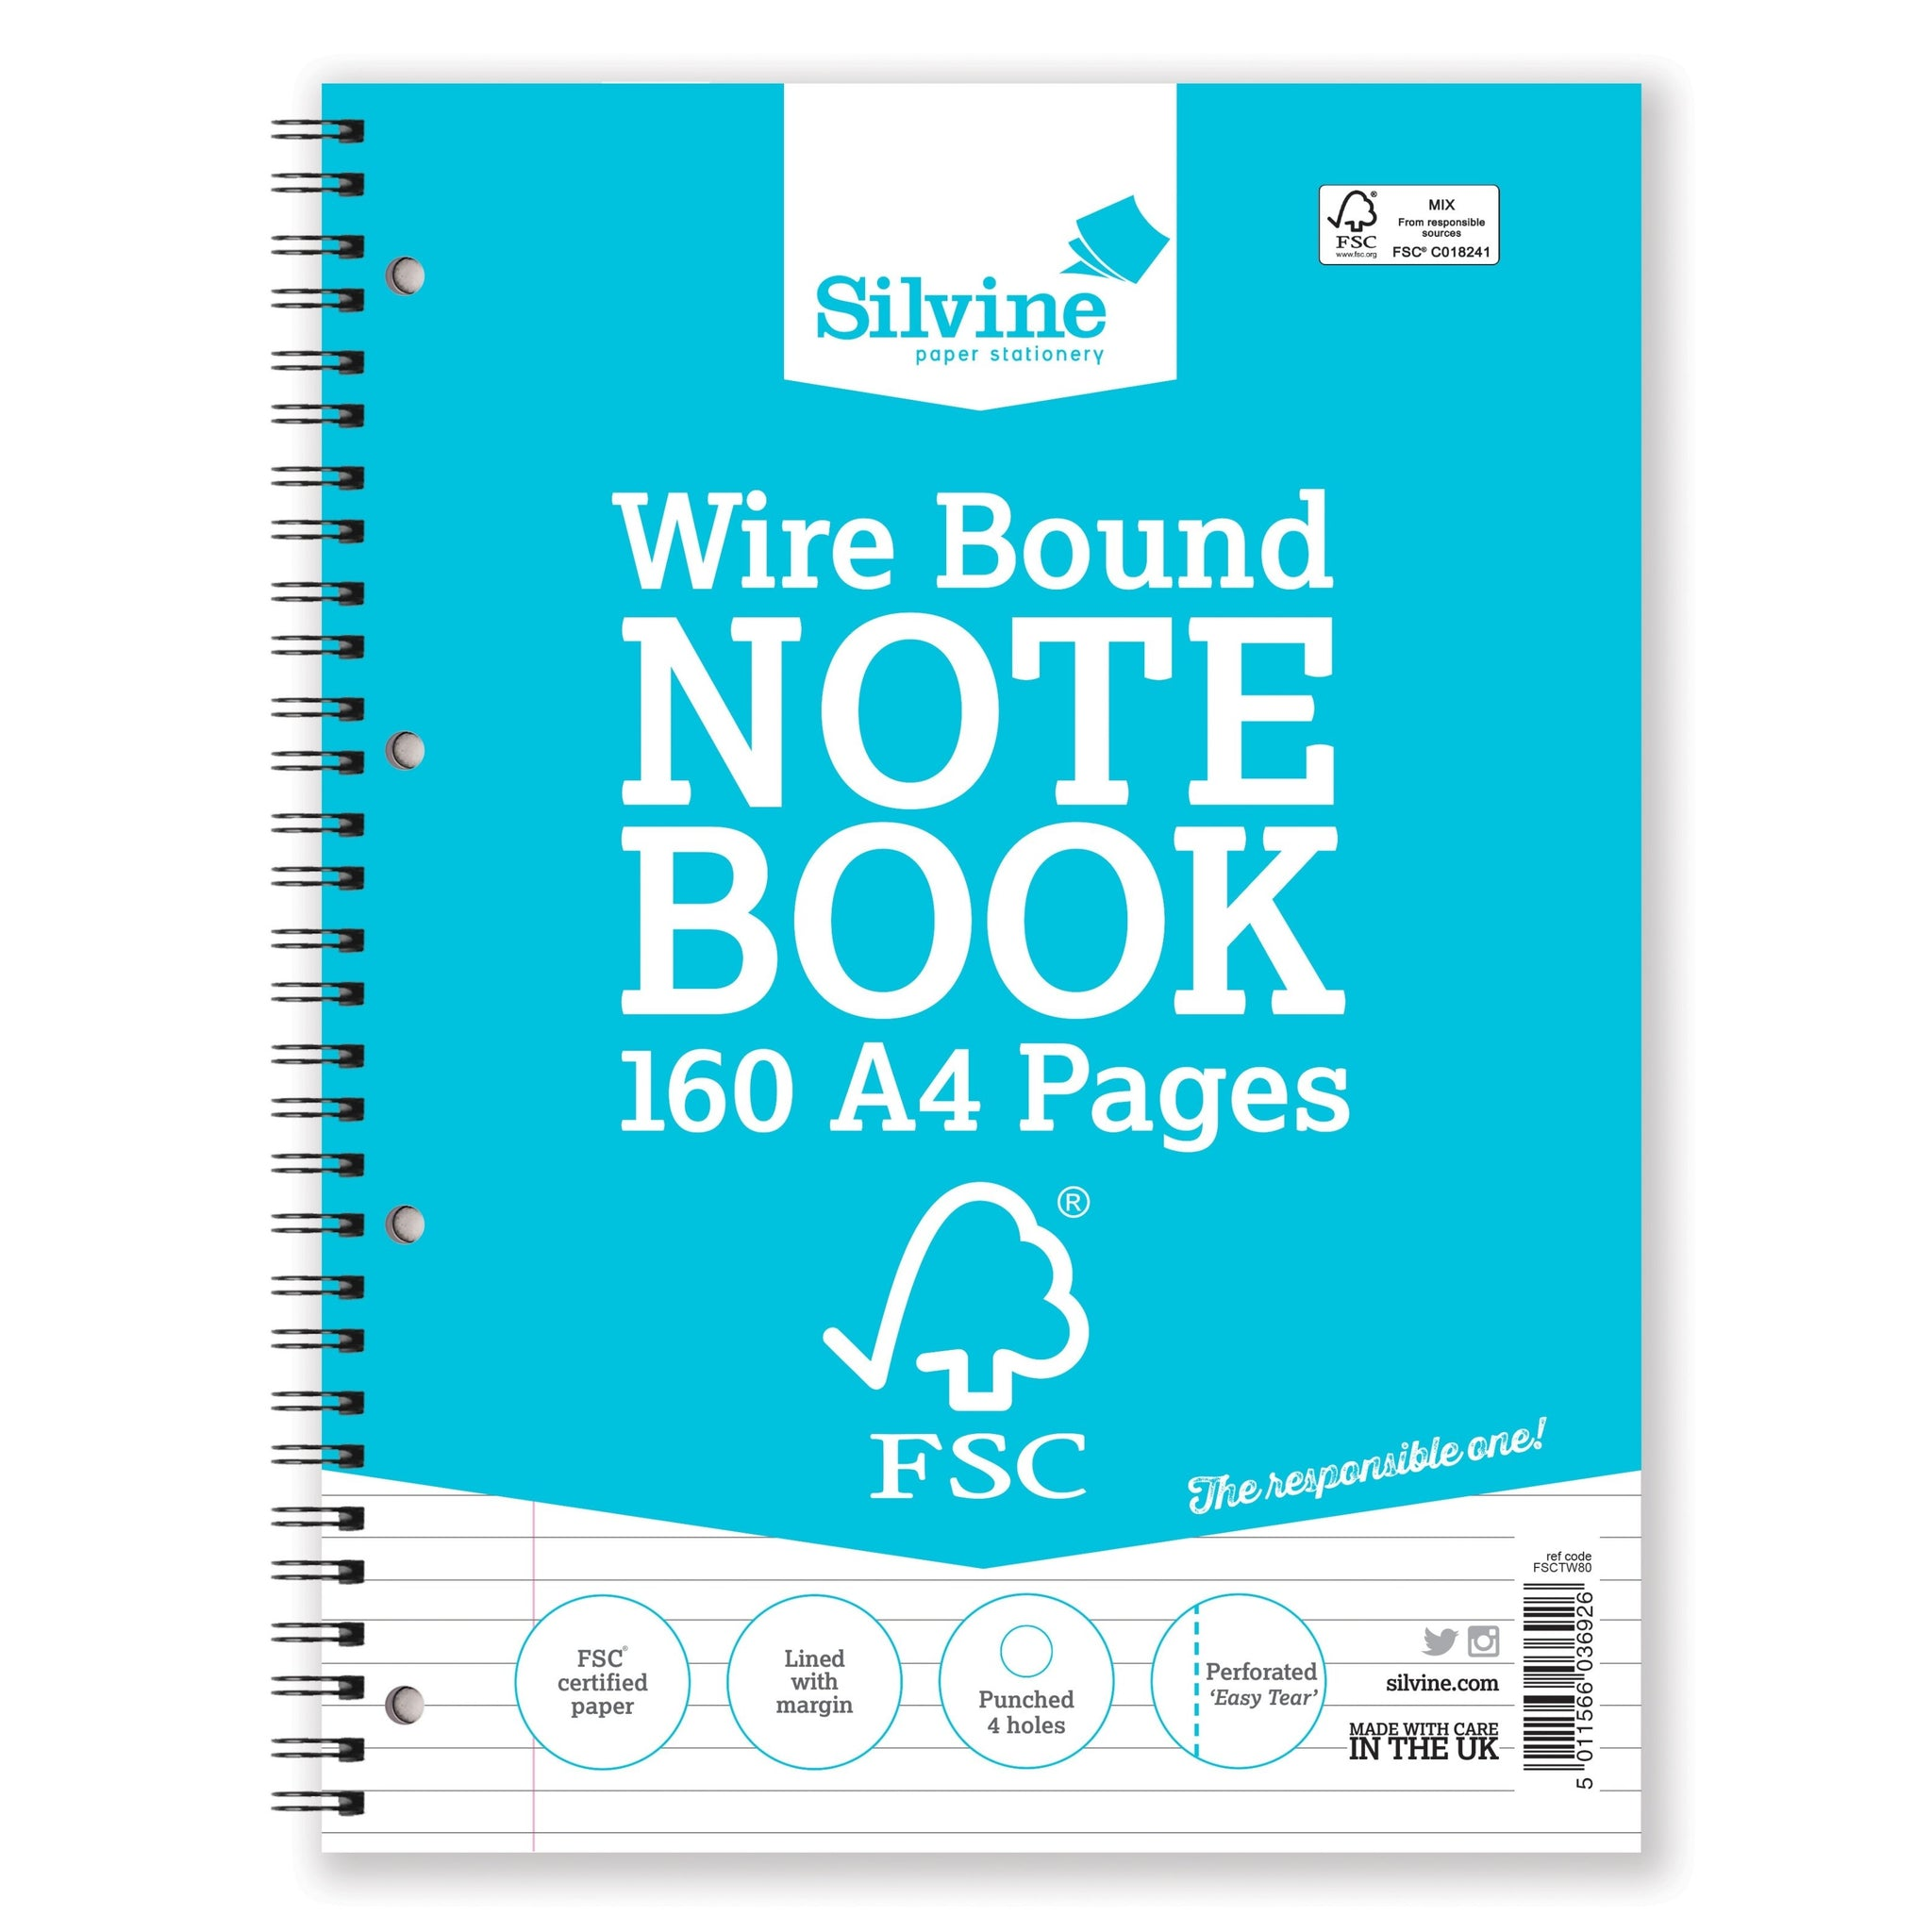 A4 FSC Certified Wirebound Notebook 160 Pages